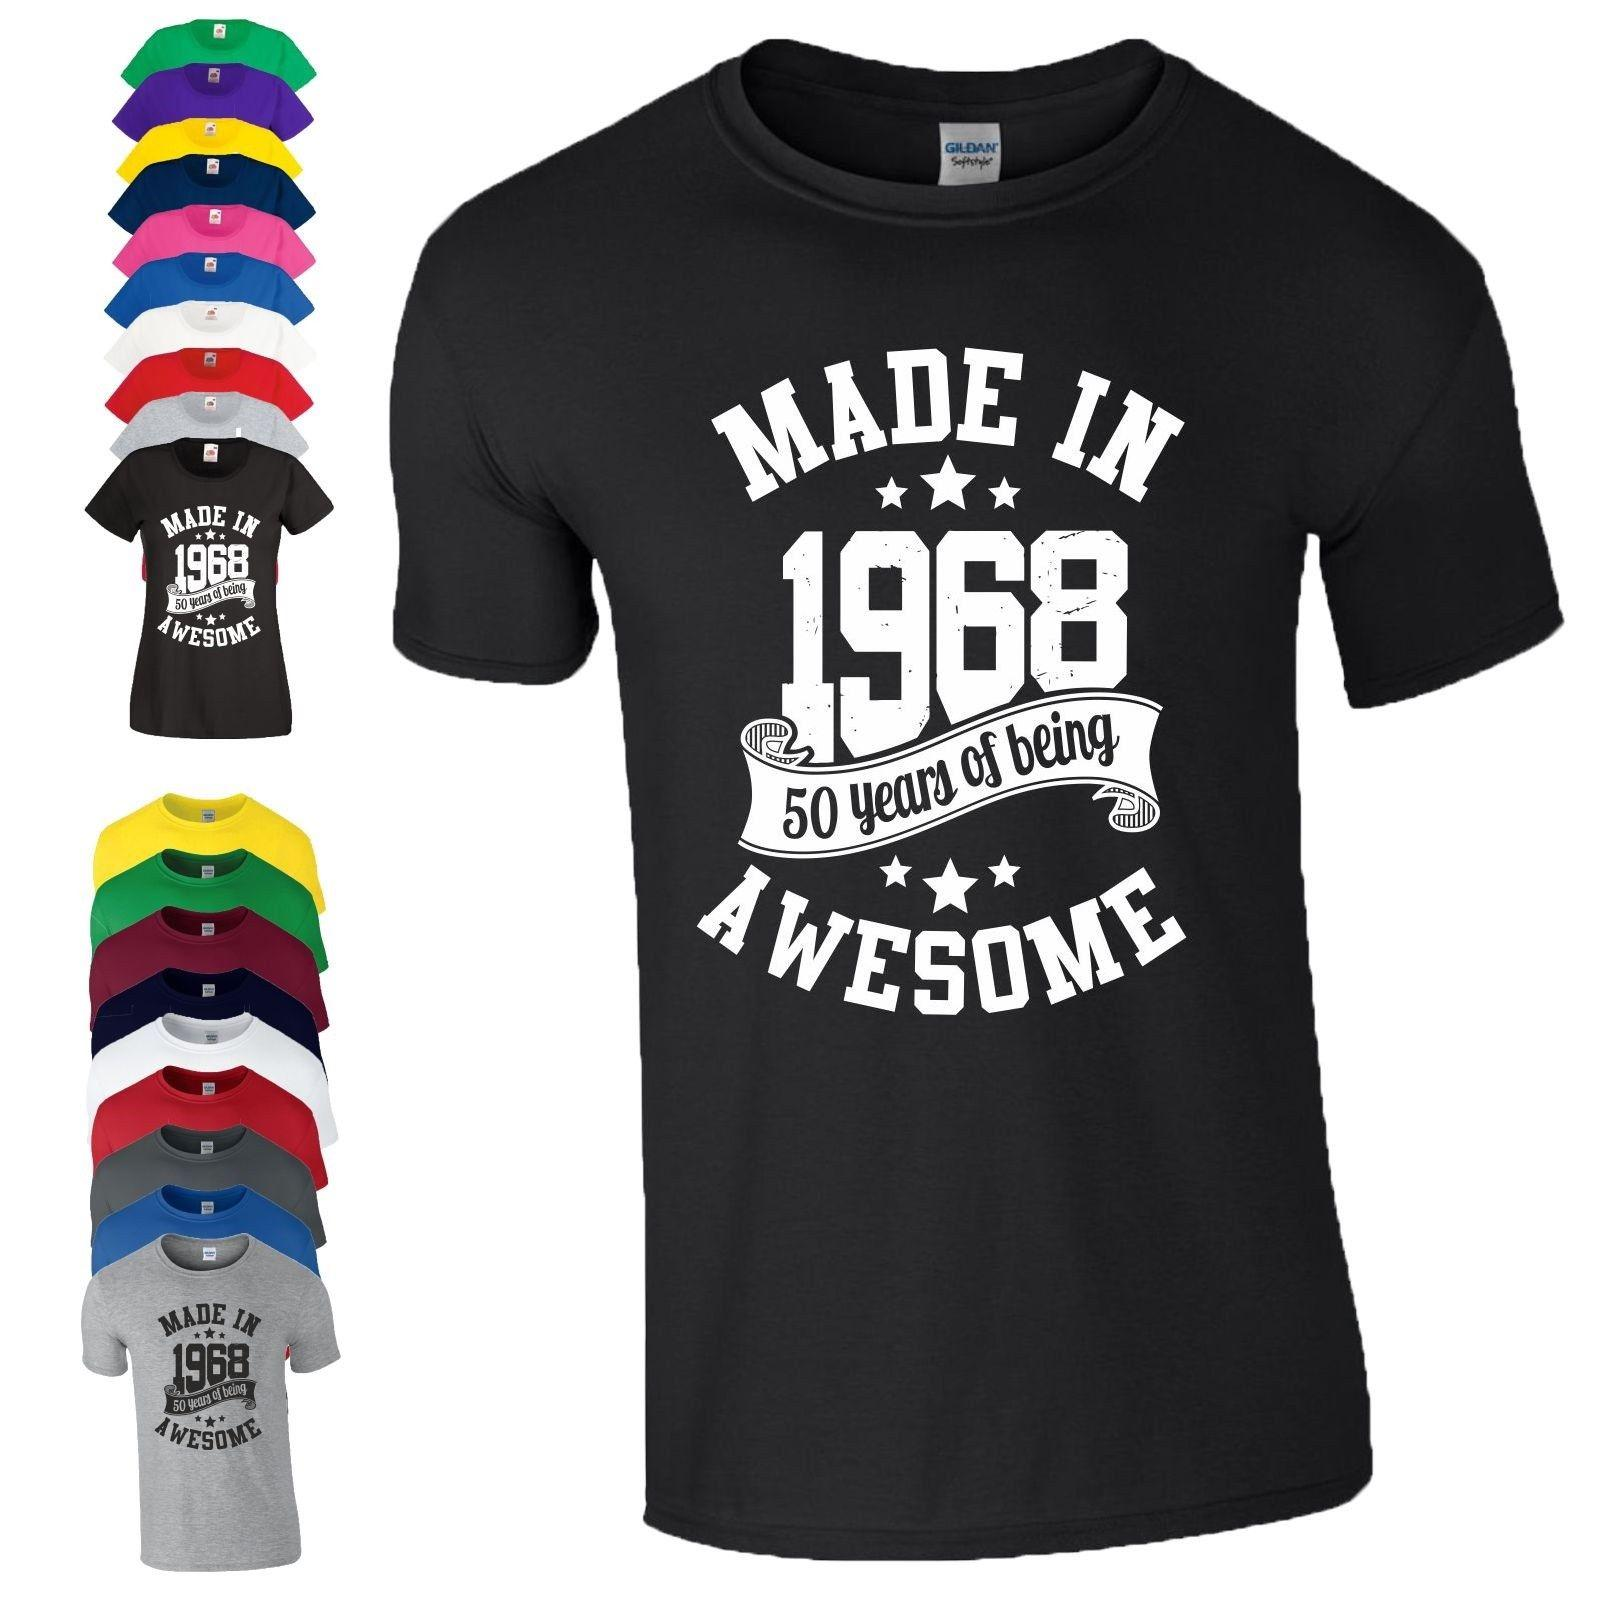 2bb7a8ab6 50th Birthday Gift T Shirt Made In 1968 Being Awesome Age 50 Years Mens  LadiesFunny Unisex Casual Gift This T Shirt T Shirts Best From  Fashionistas_tees, ...